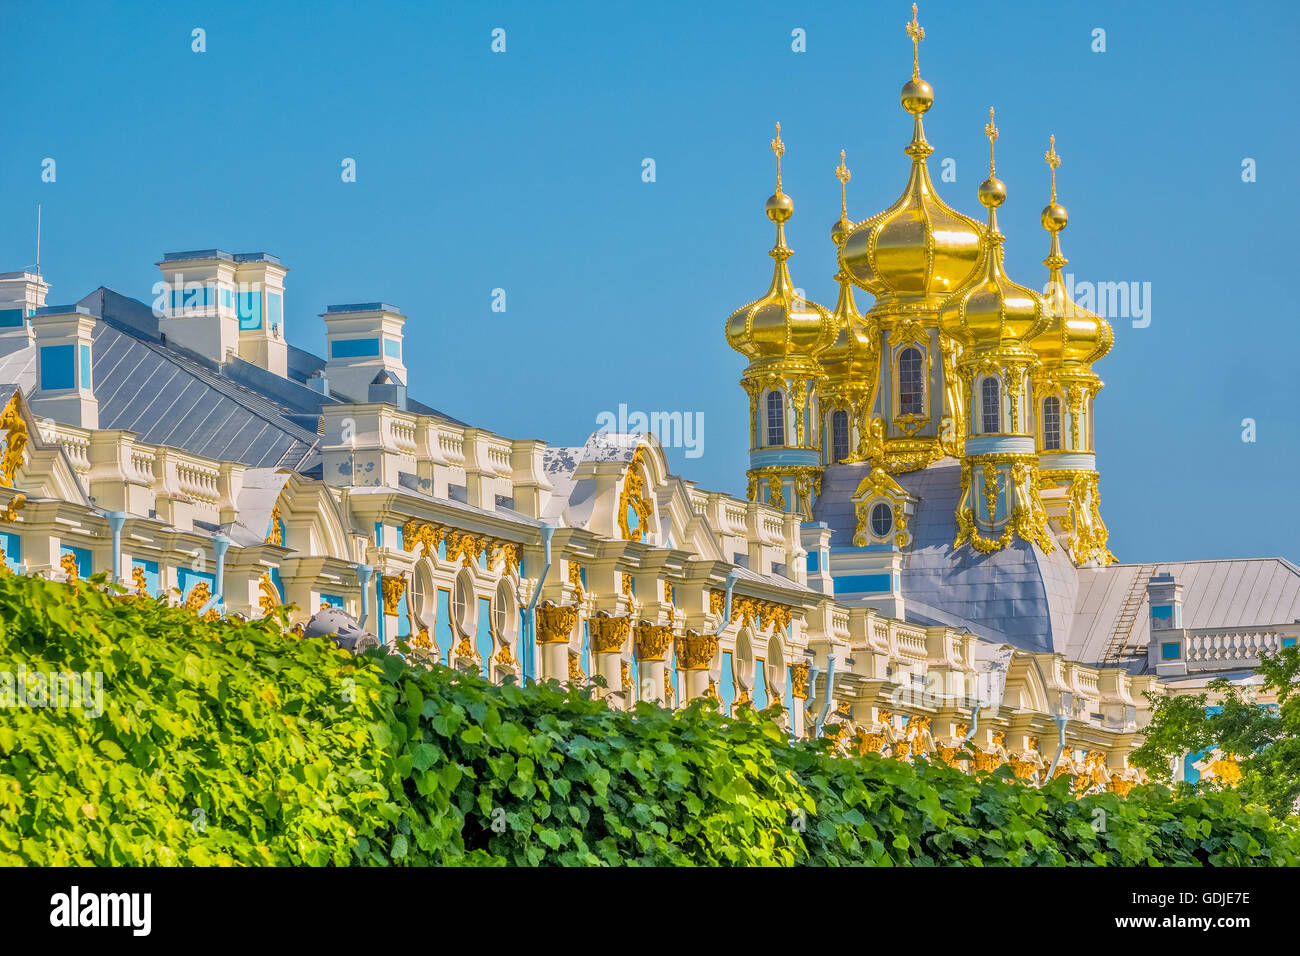 Roof and Domes Of The Catherine Palace Pushkin St Petersburg Russia - Stock Image